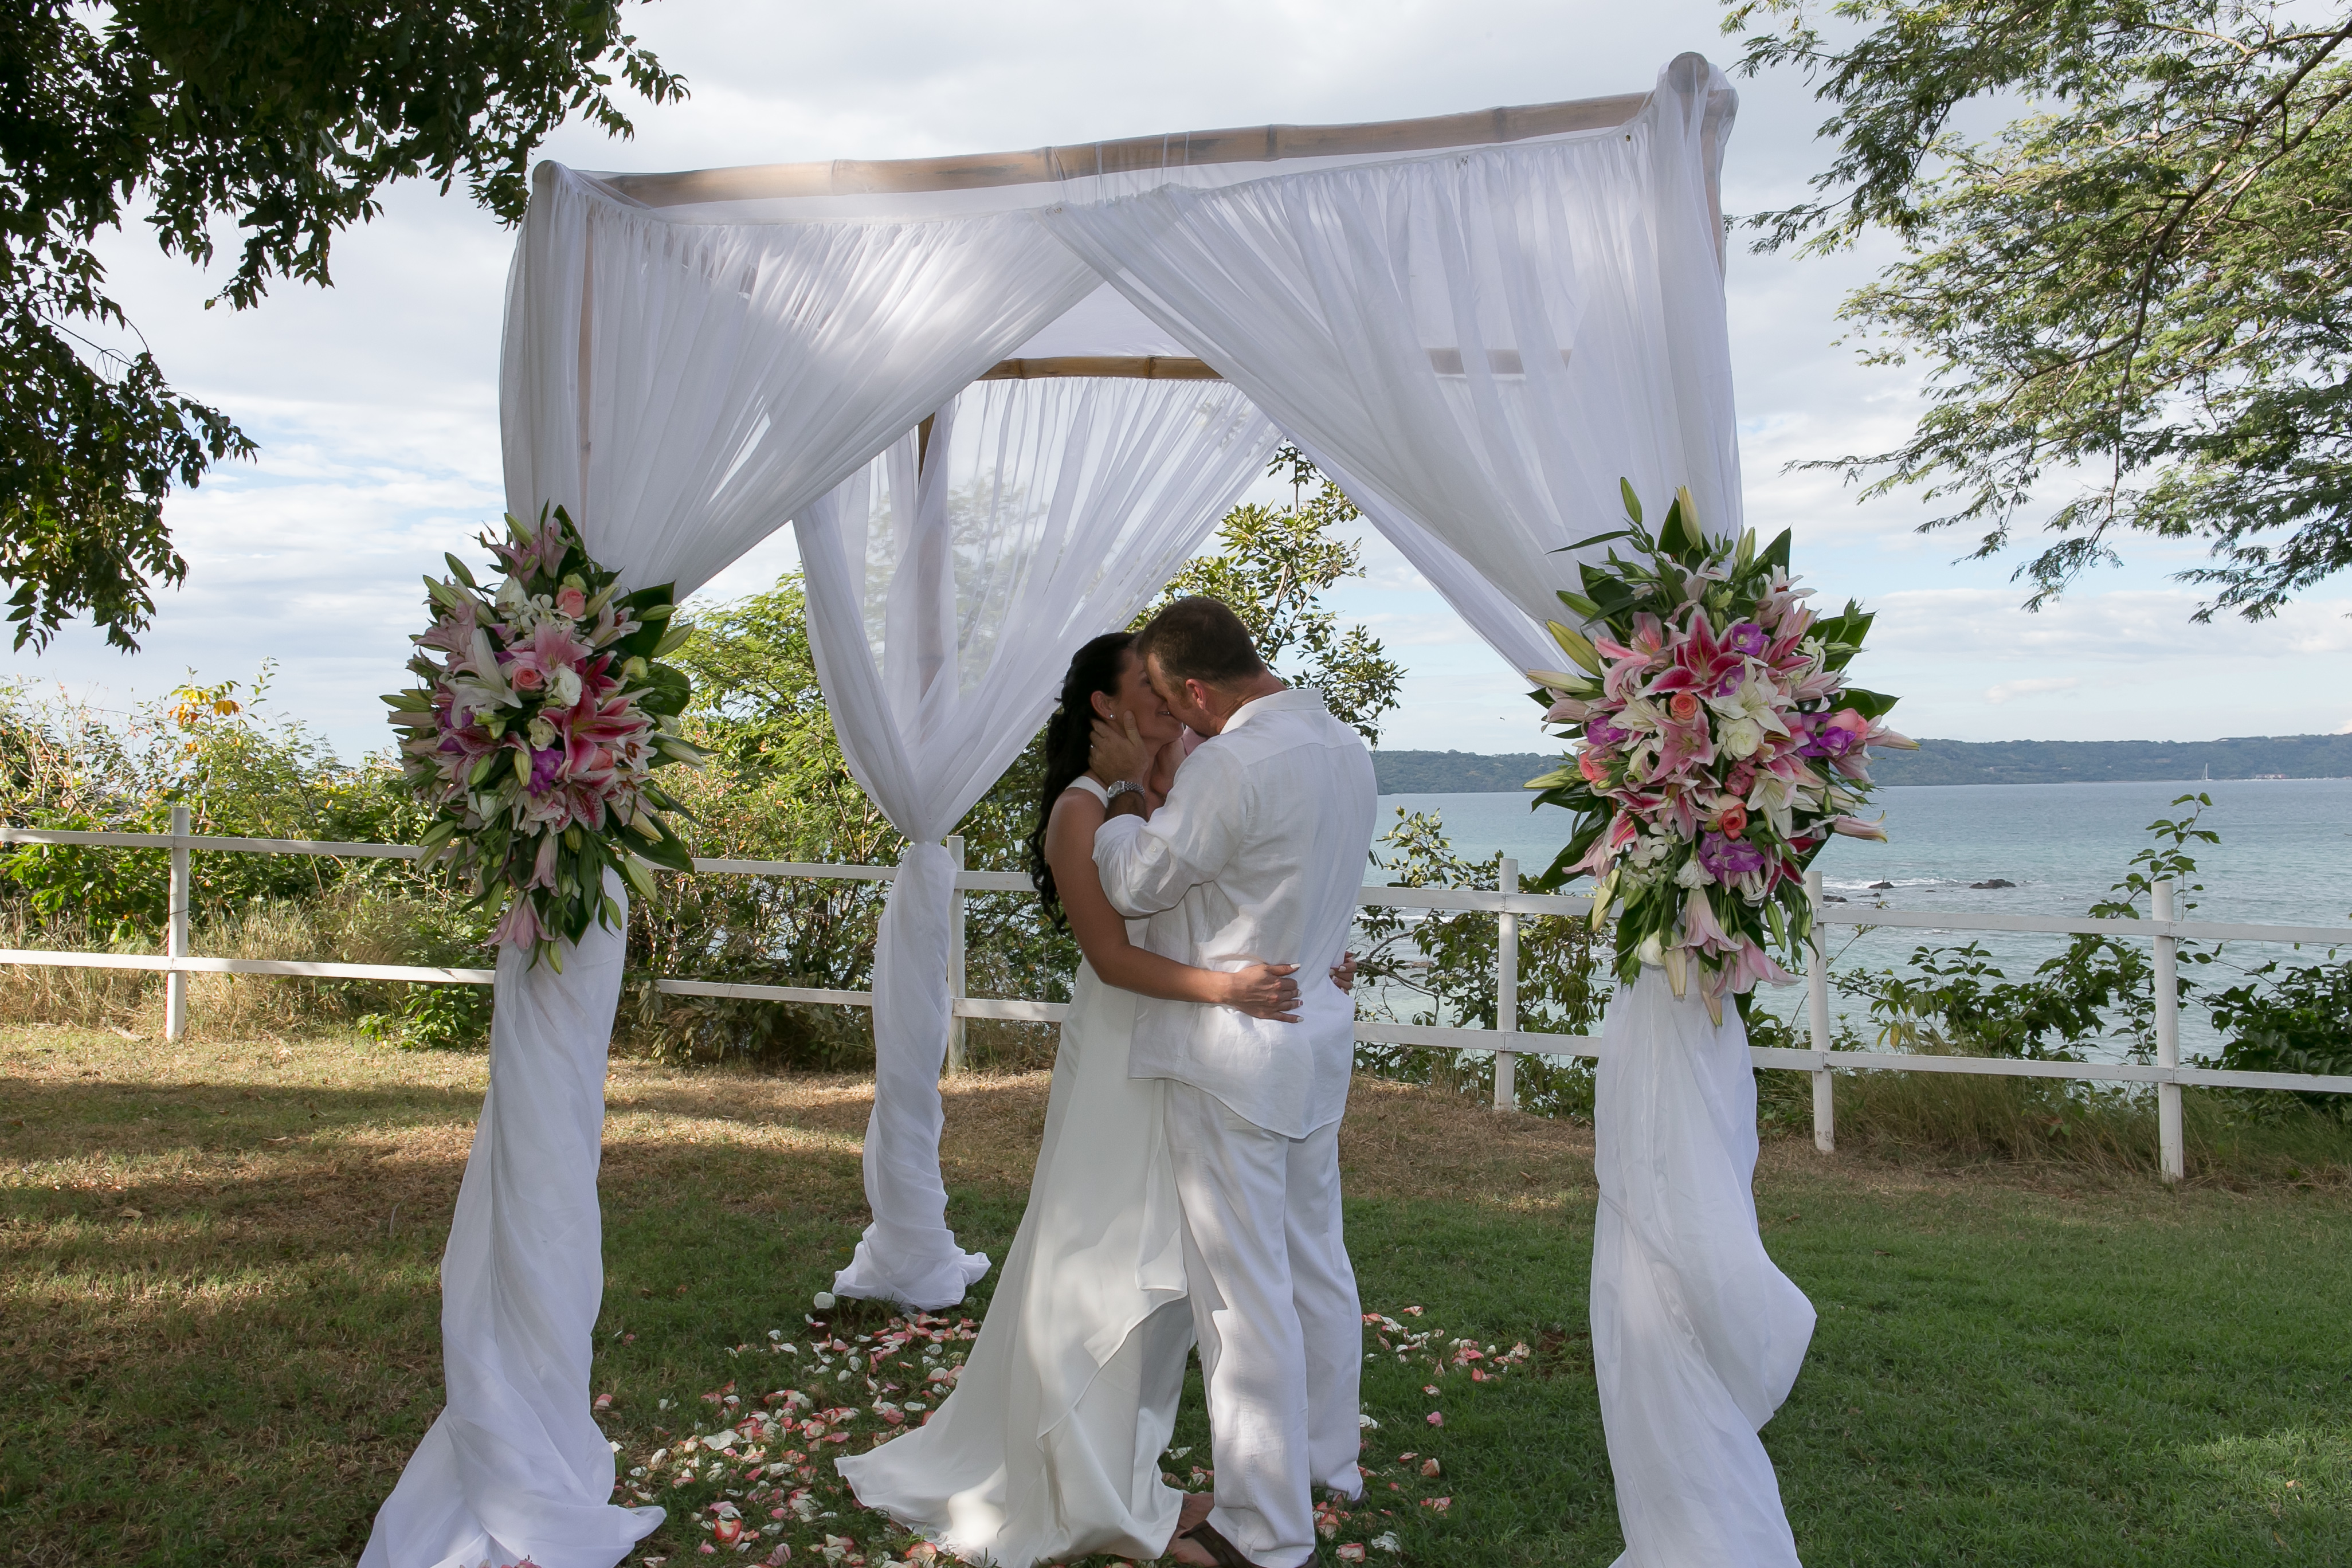 wedding canapy over looking the ocean in Guanacaste Costa Rica